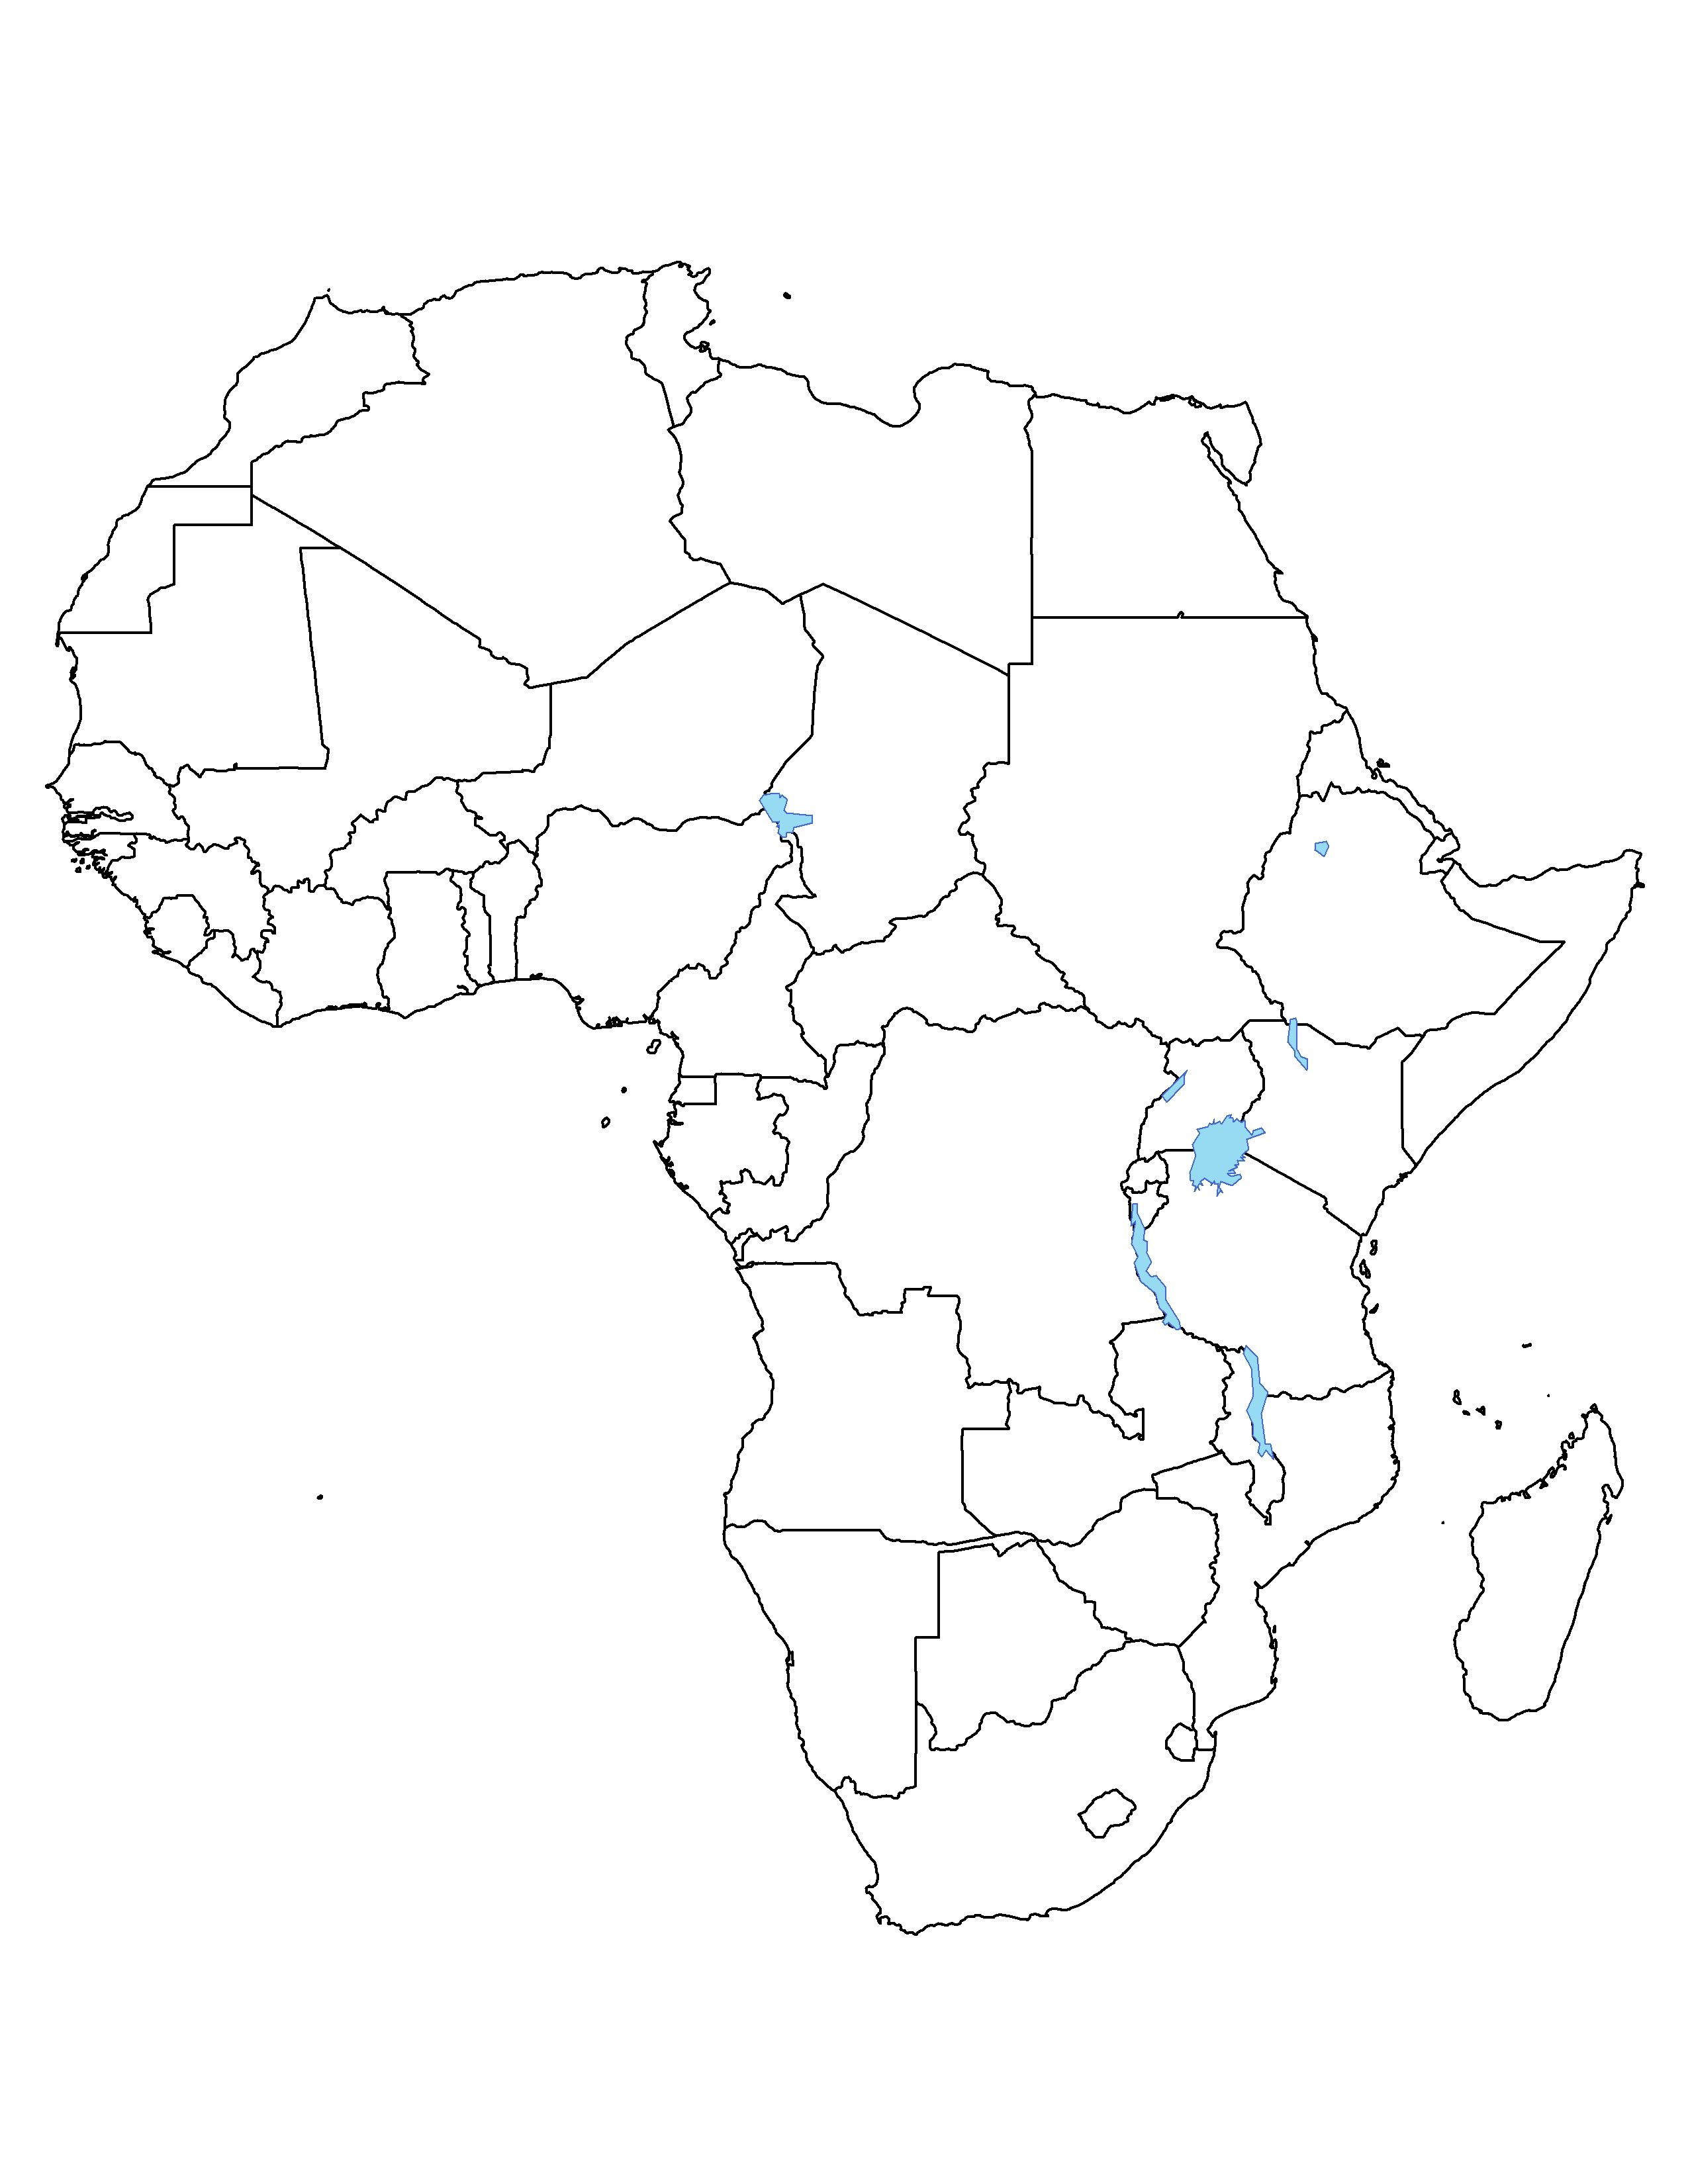 Blank map of africa clipart best clipart best giraffes african outline map in world map coloring page african outline map in world map coloring page color kiddo gumiabroncs Image collections